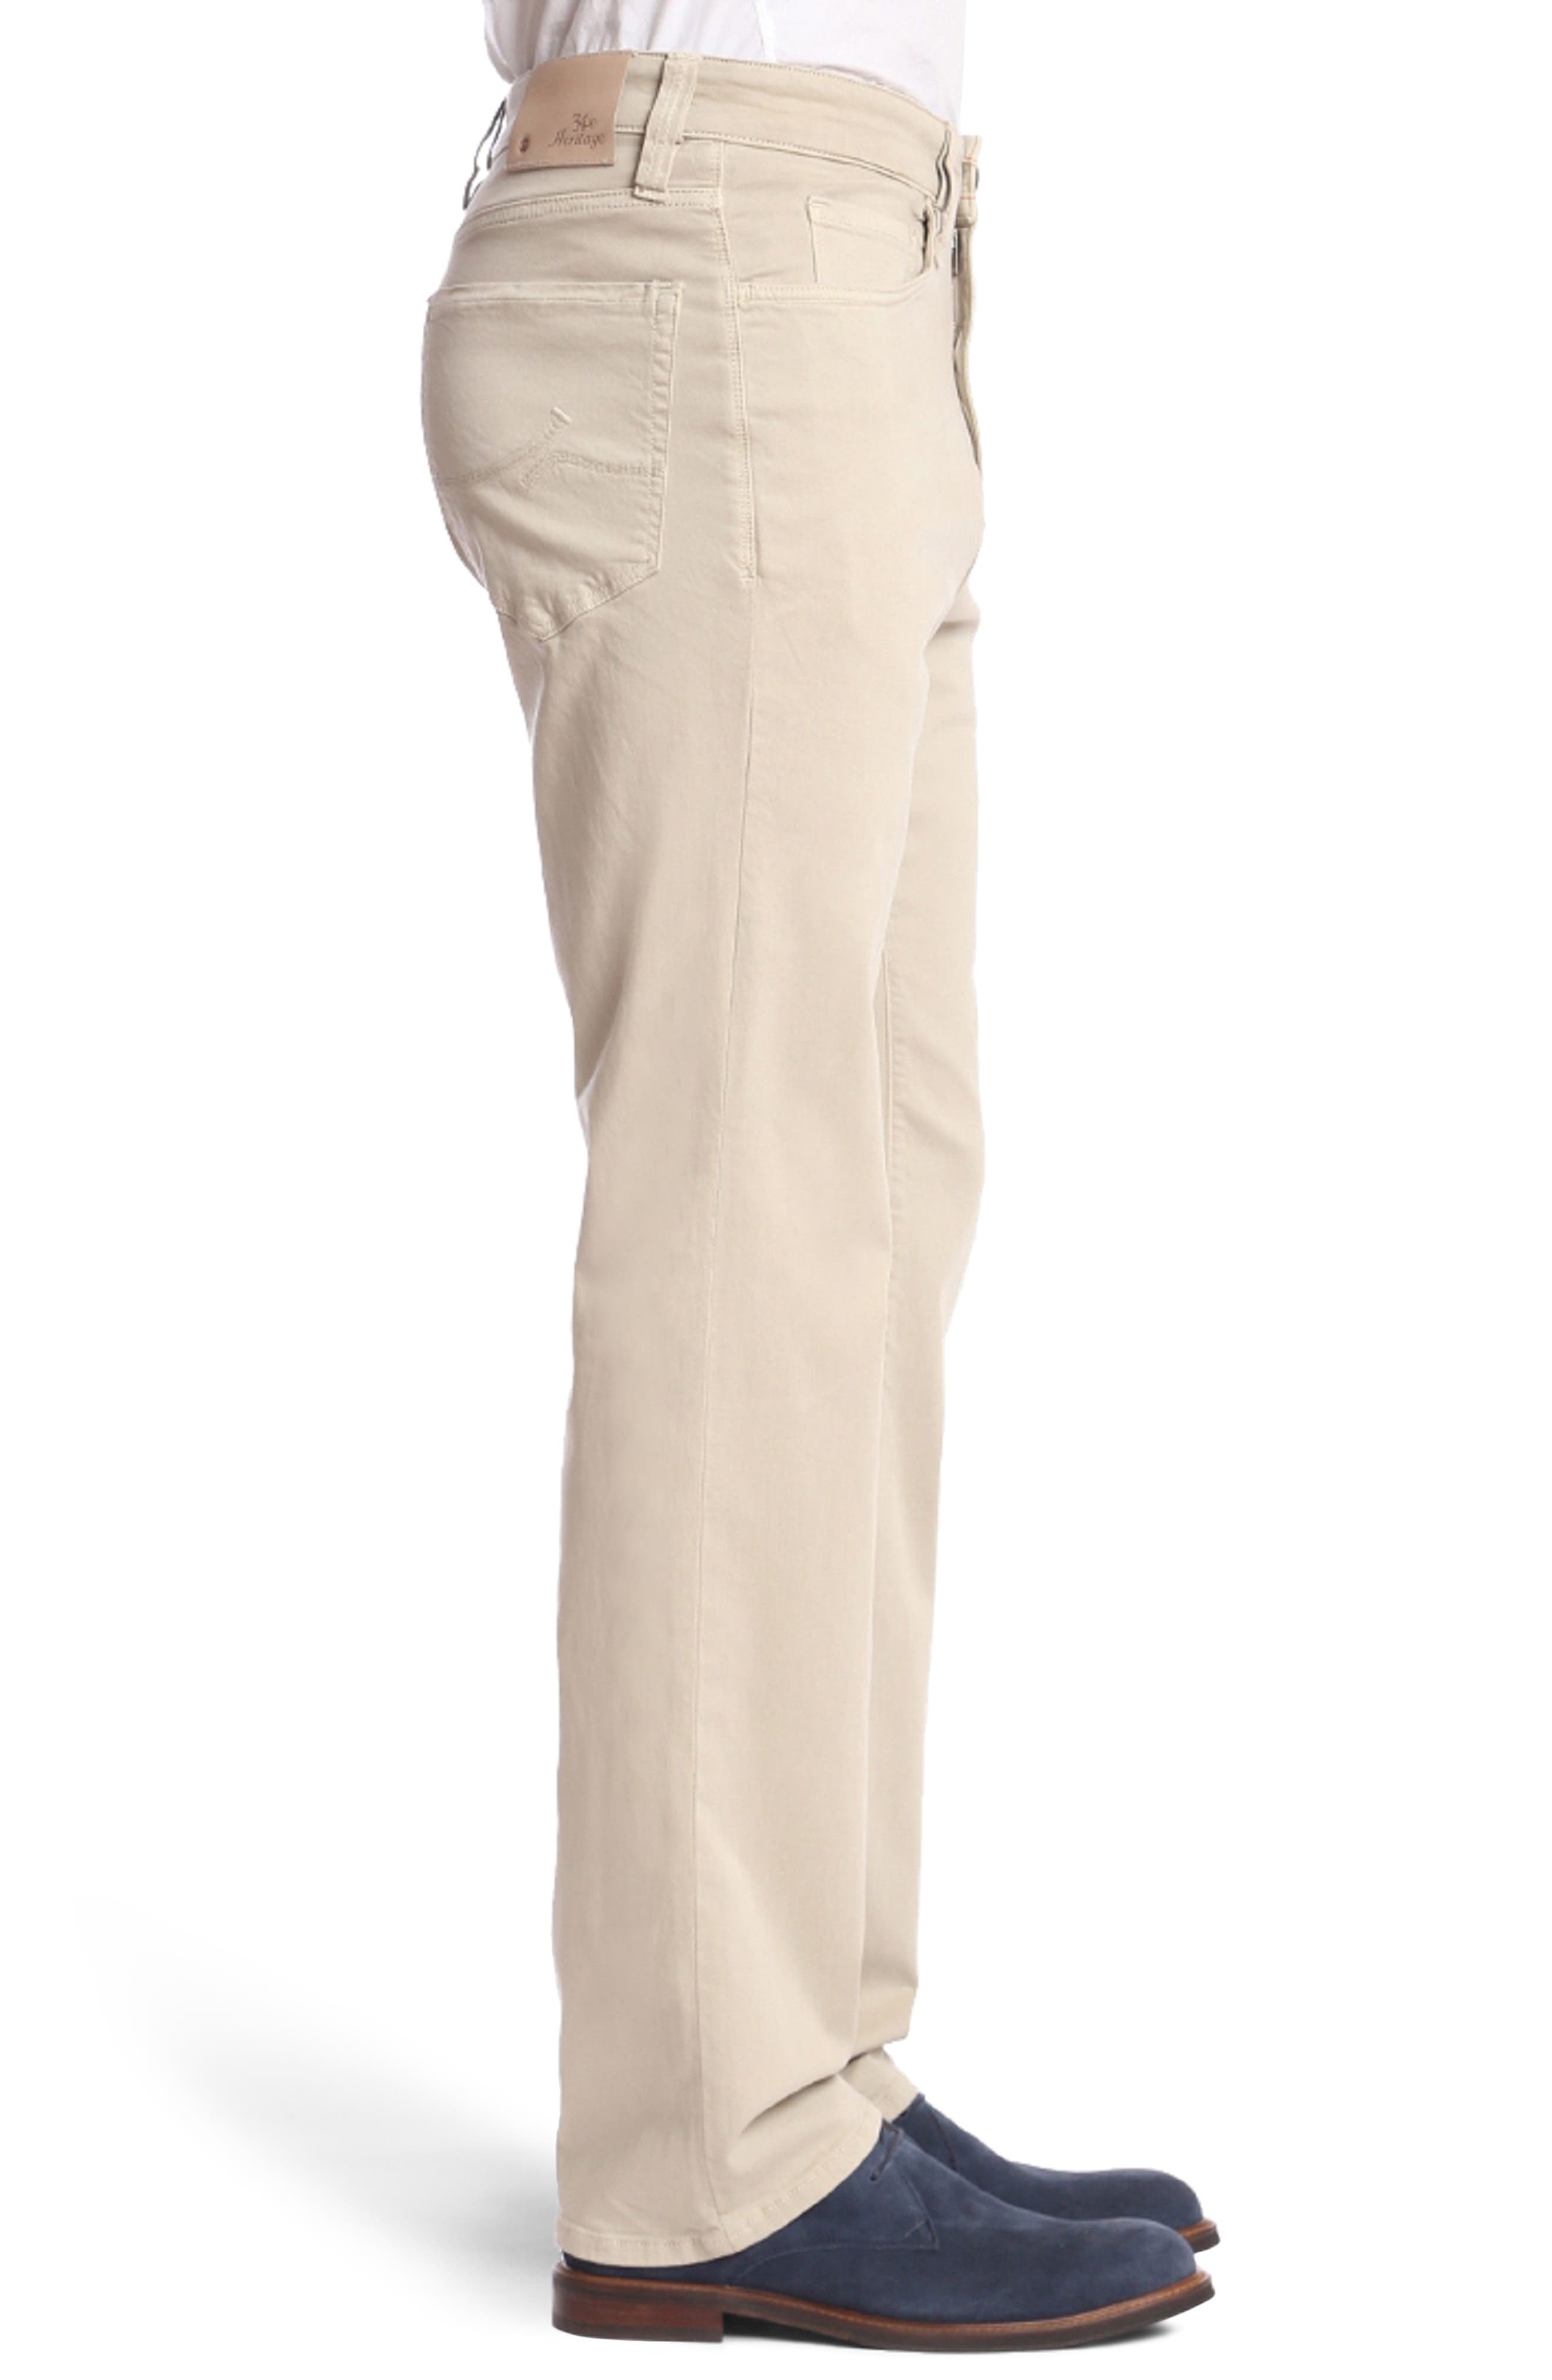 Charisma Relaxed Fit Jeans,                             Alternate thumbnail 3, color,                             250